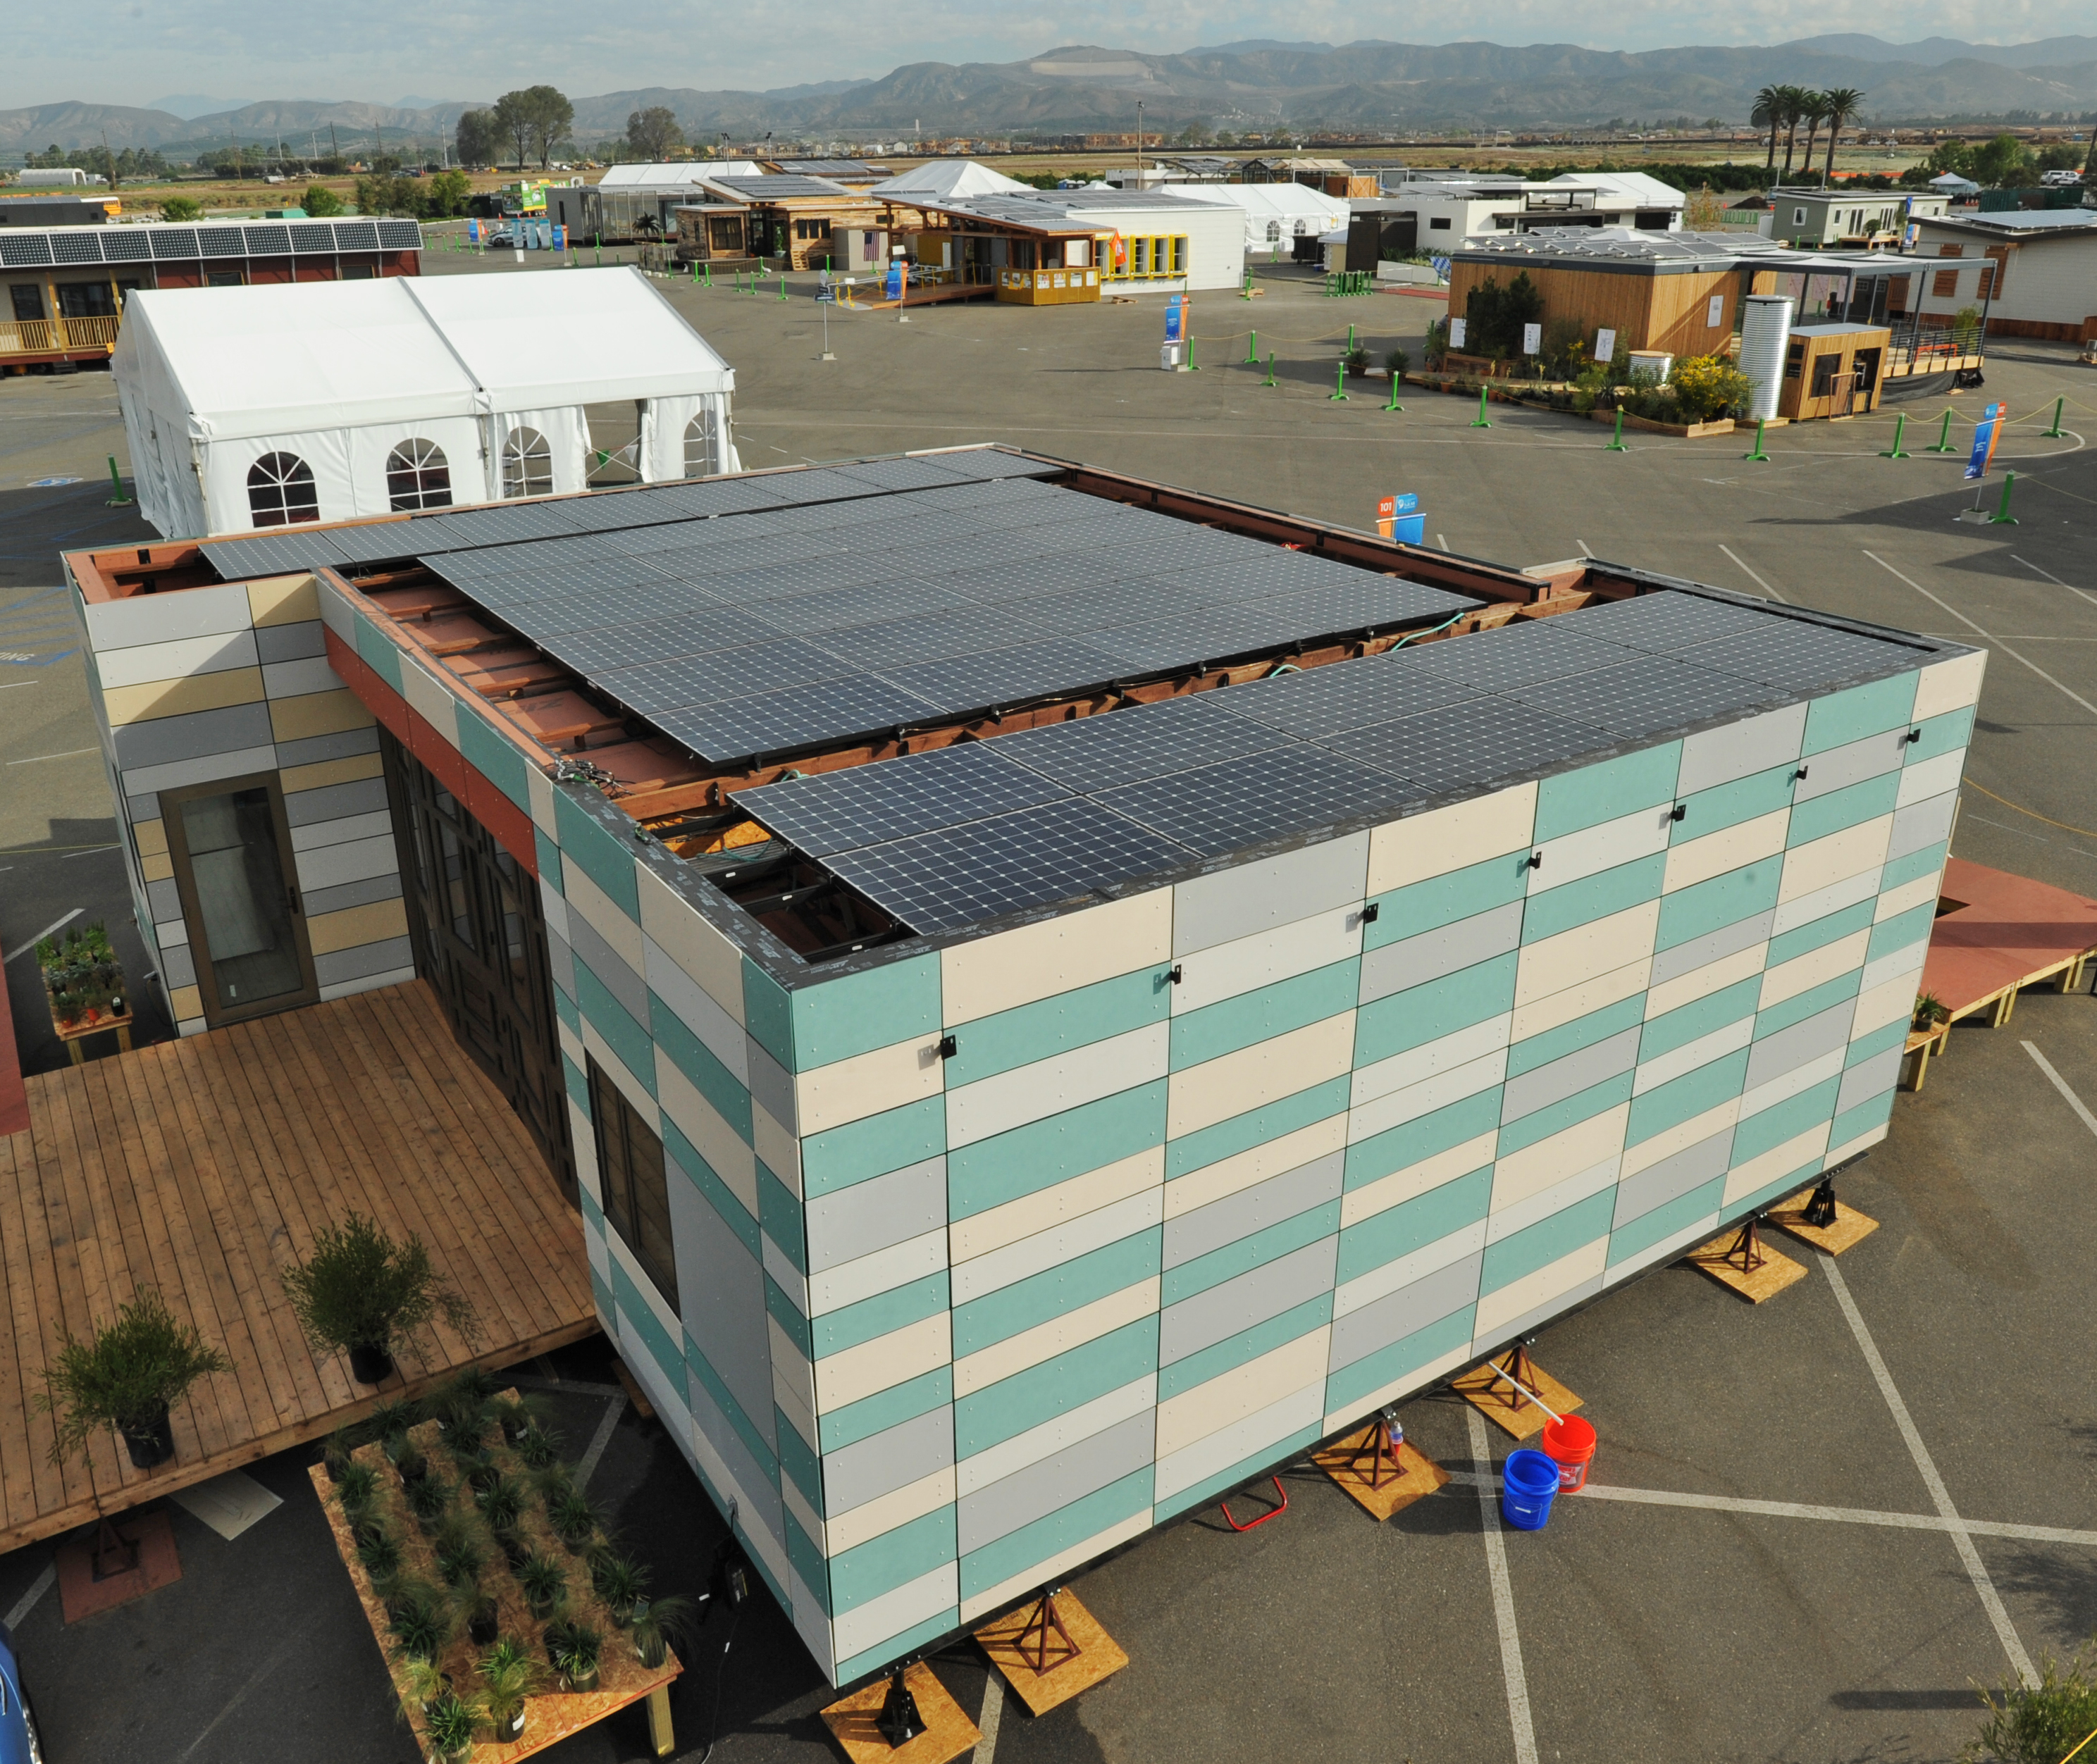 Solar decathlon 2015 crowder college and drury university for Solar decathlon 2015